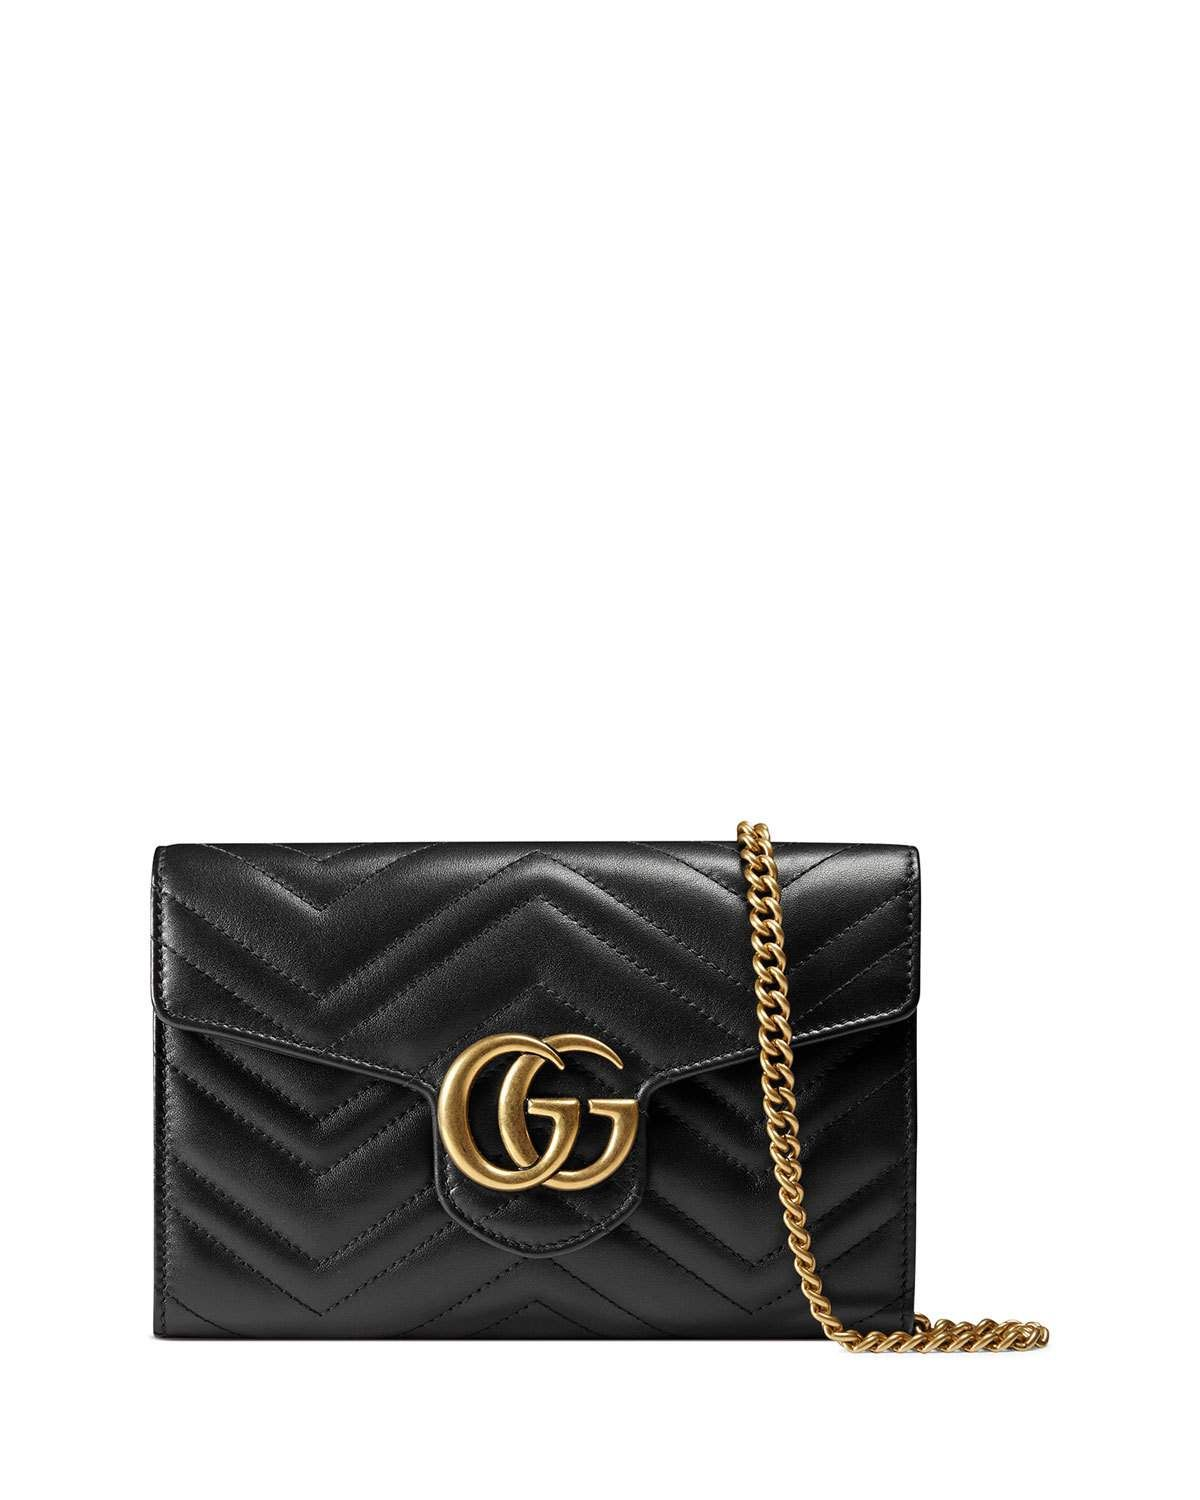 64e177d27cbd Gucci GG Marmont Matelassé Mini Bag, Black | lust list // | Bags ...